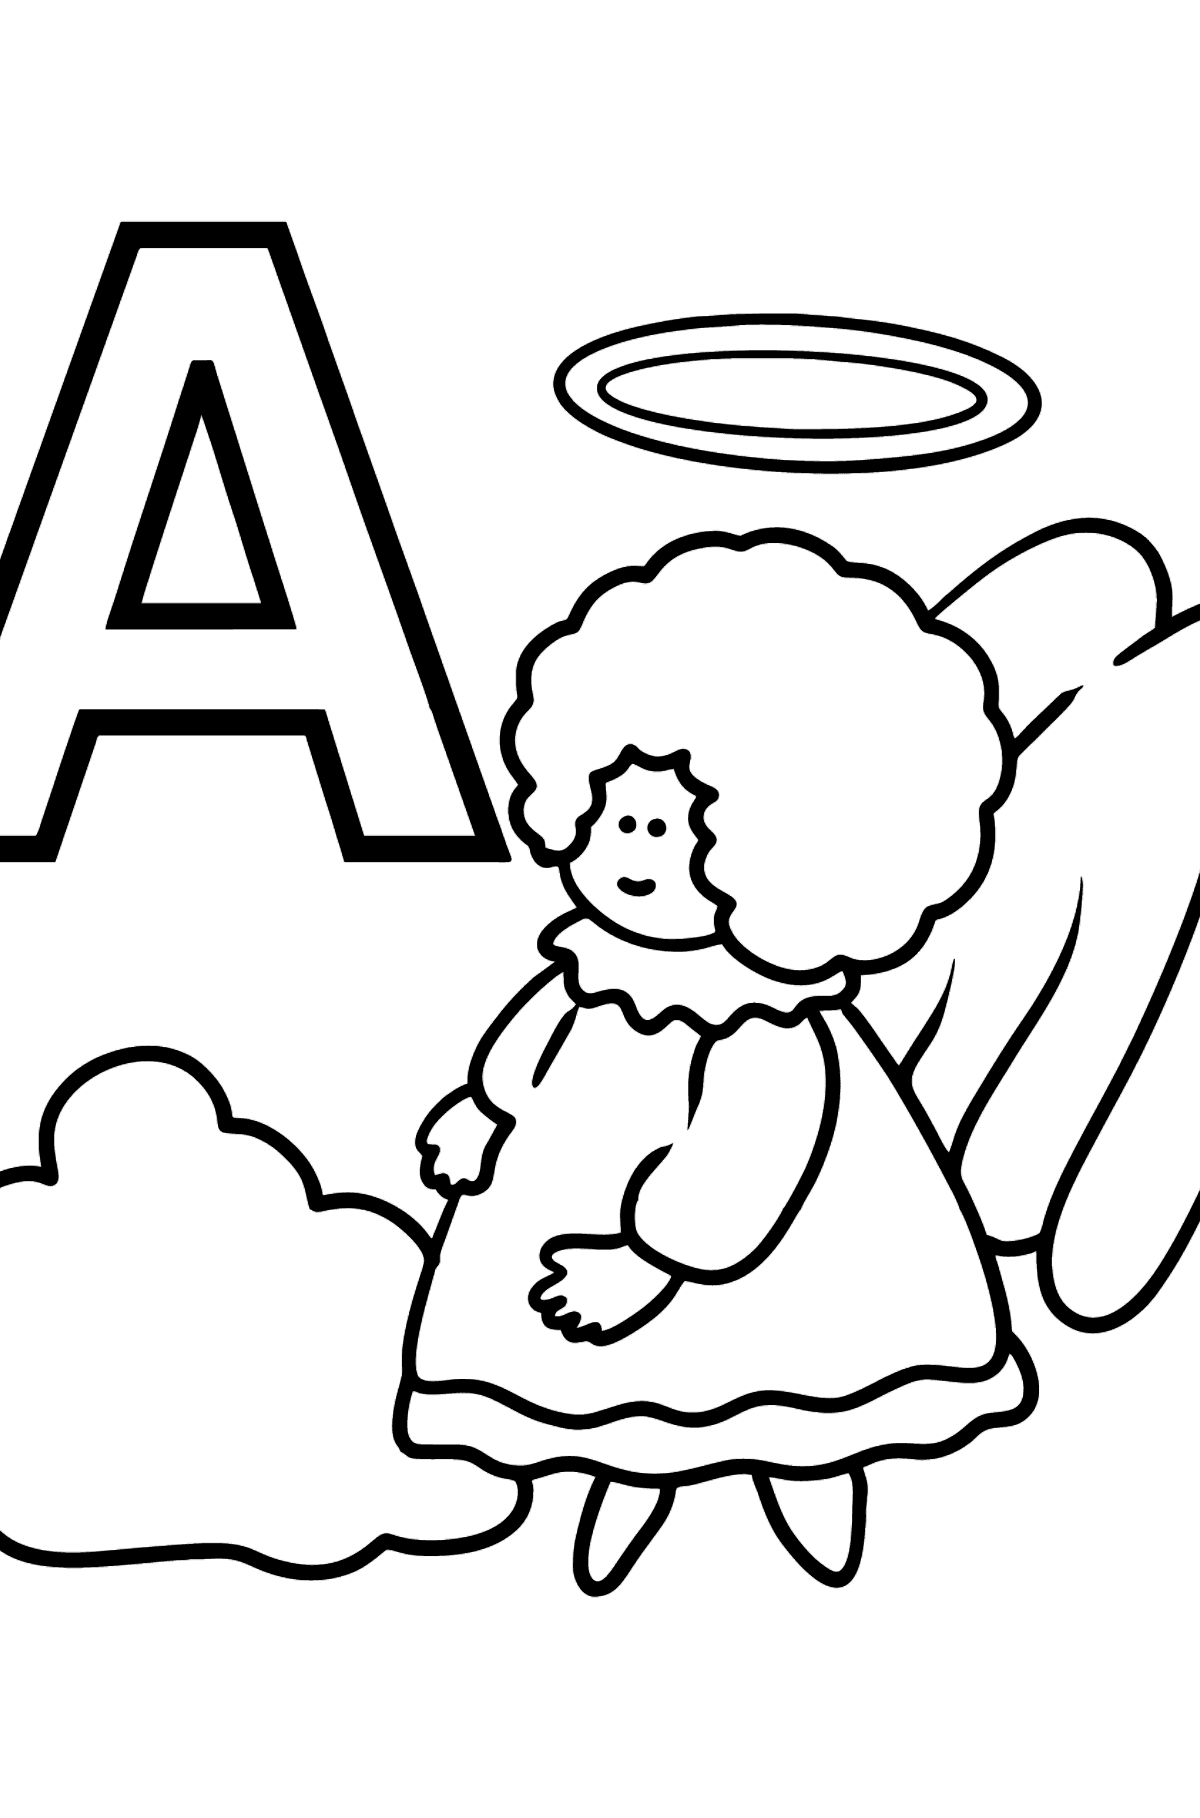 Portuguese Letter A coloring pages - ANJO - Coloring Pages for Kids